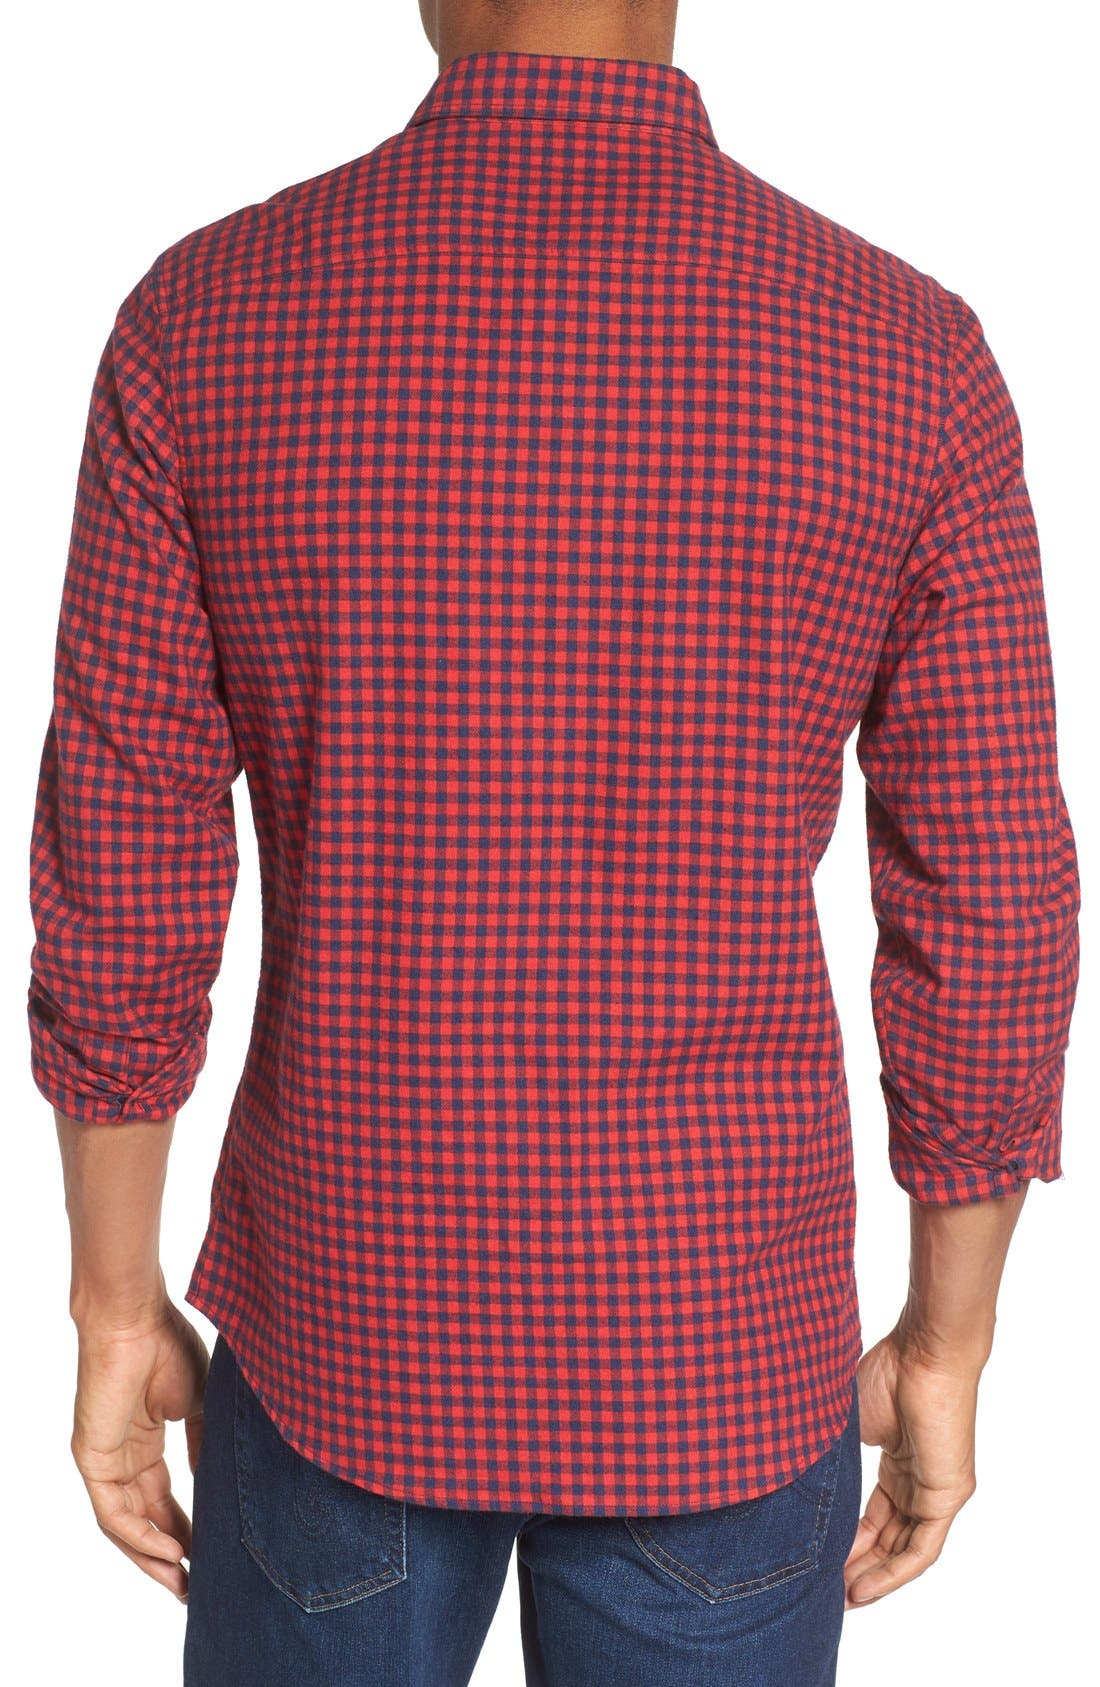 Alternate Image 2  - Nordstrom Men's Shop Slim Fit Gingham Flannel Sport Shirt